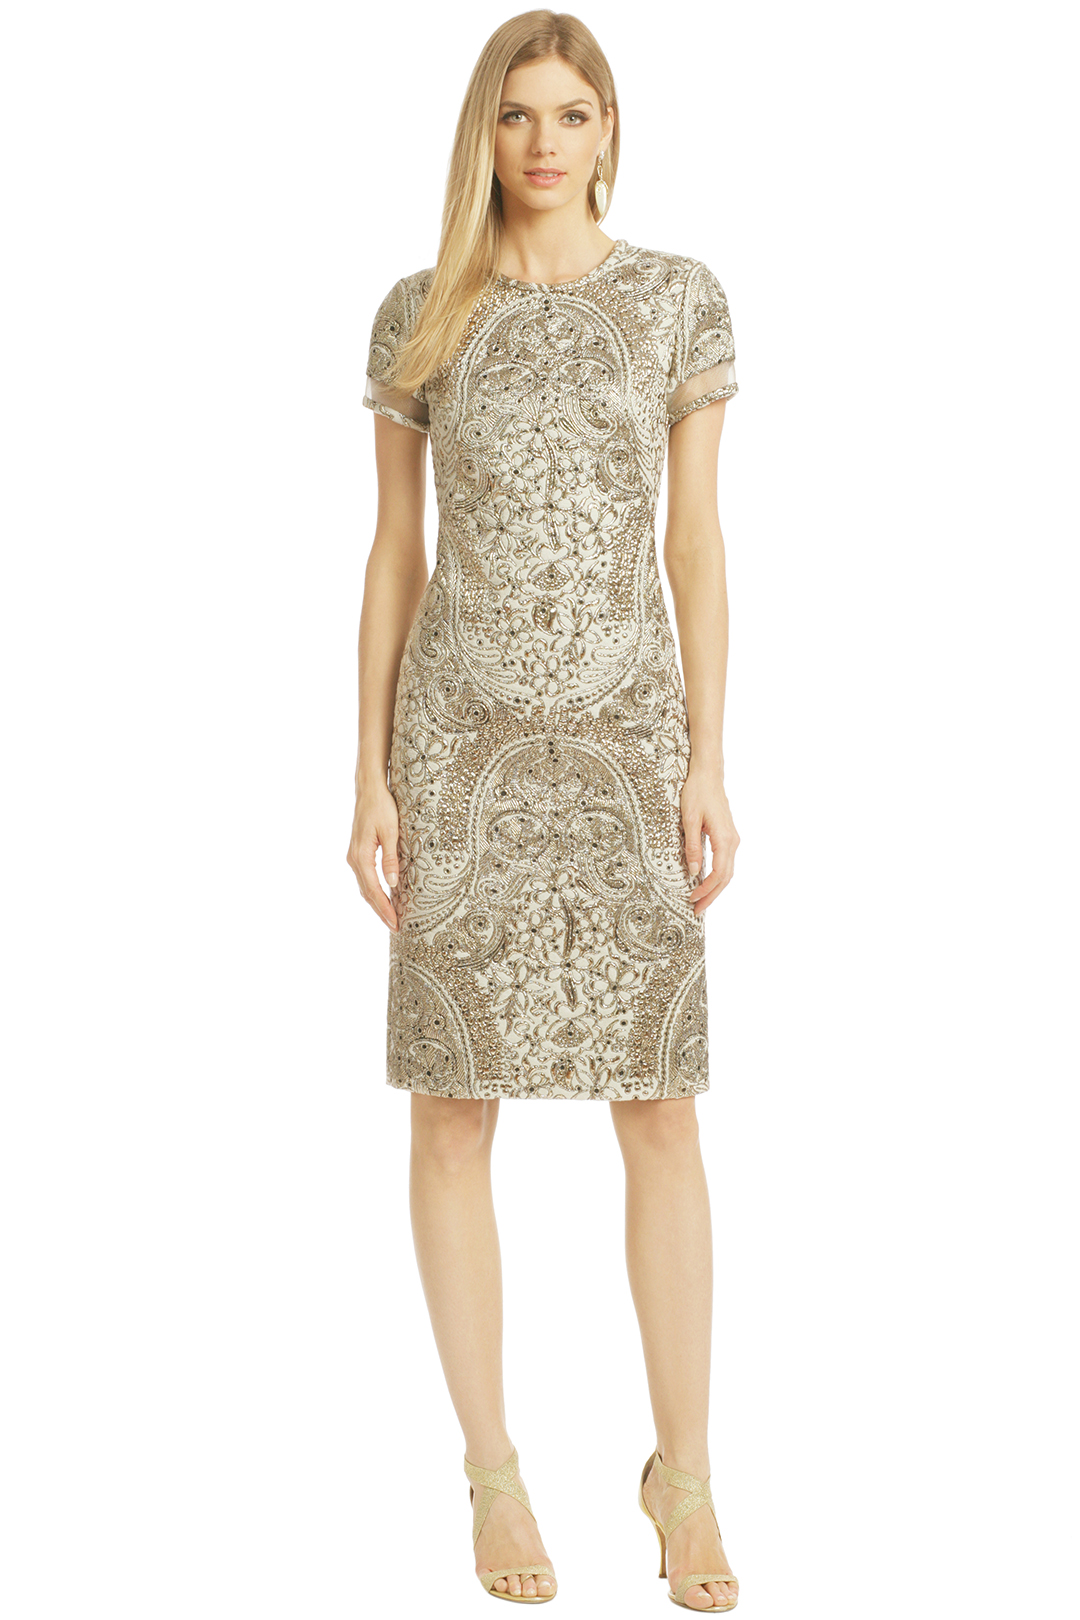 Baroness Sheath by pamella roland at $350 | Rent The Runway